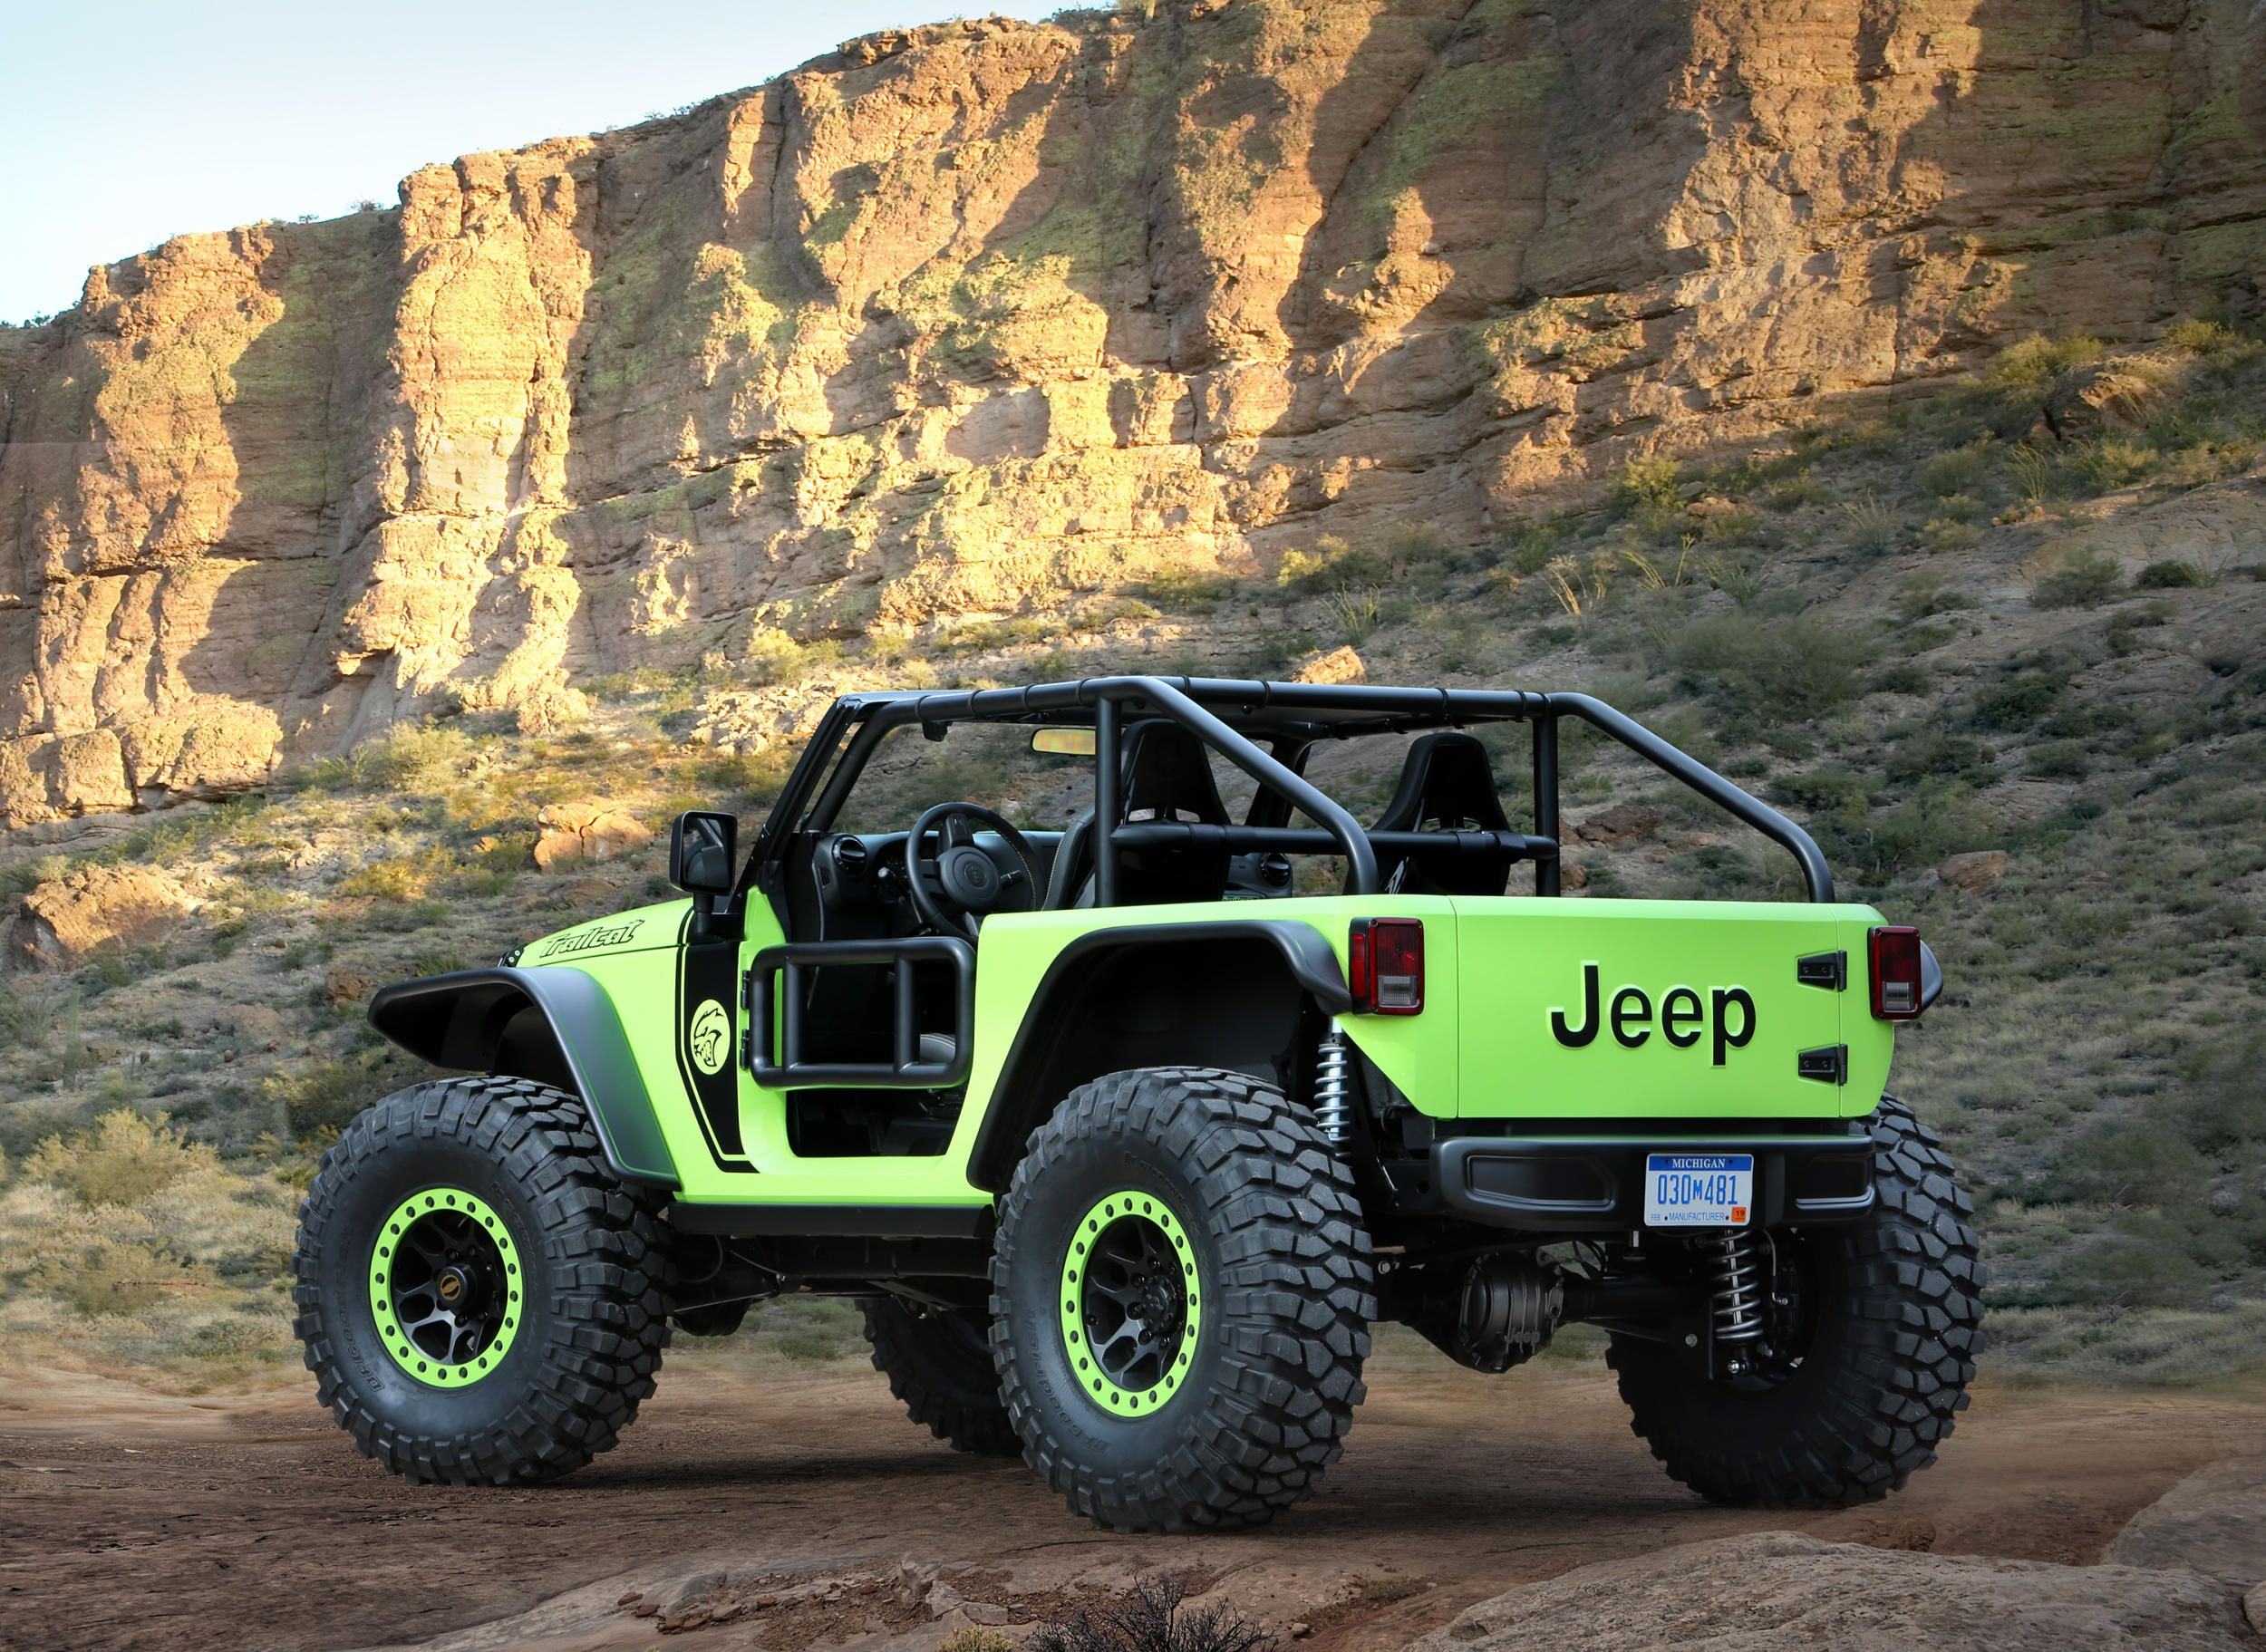 Jeep reveals its latest lustworthy concepts at the 50th Annual Easter Jeep Safari - Acquire